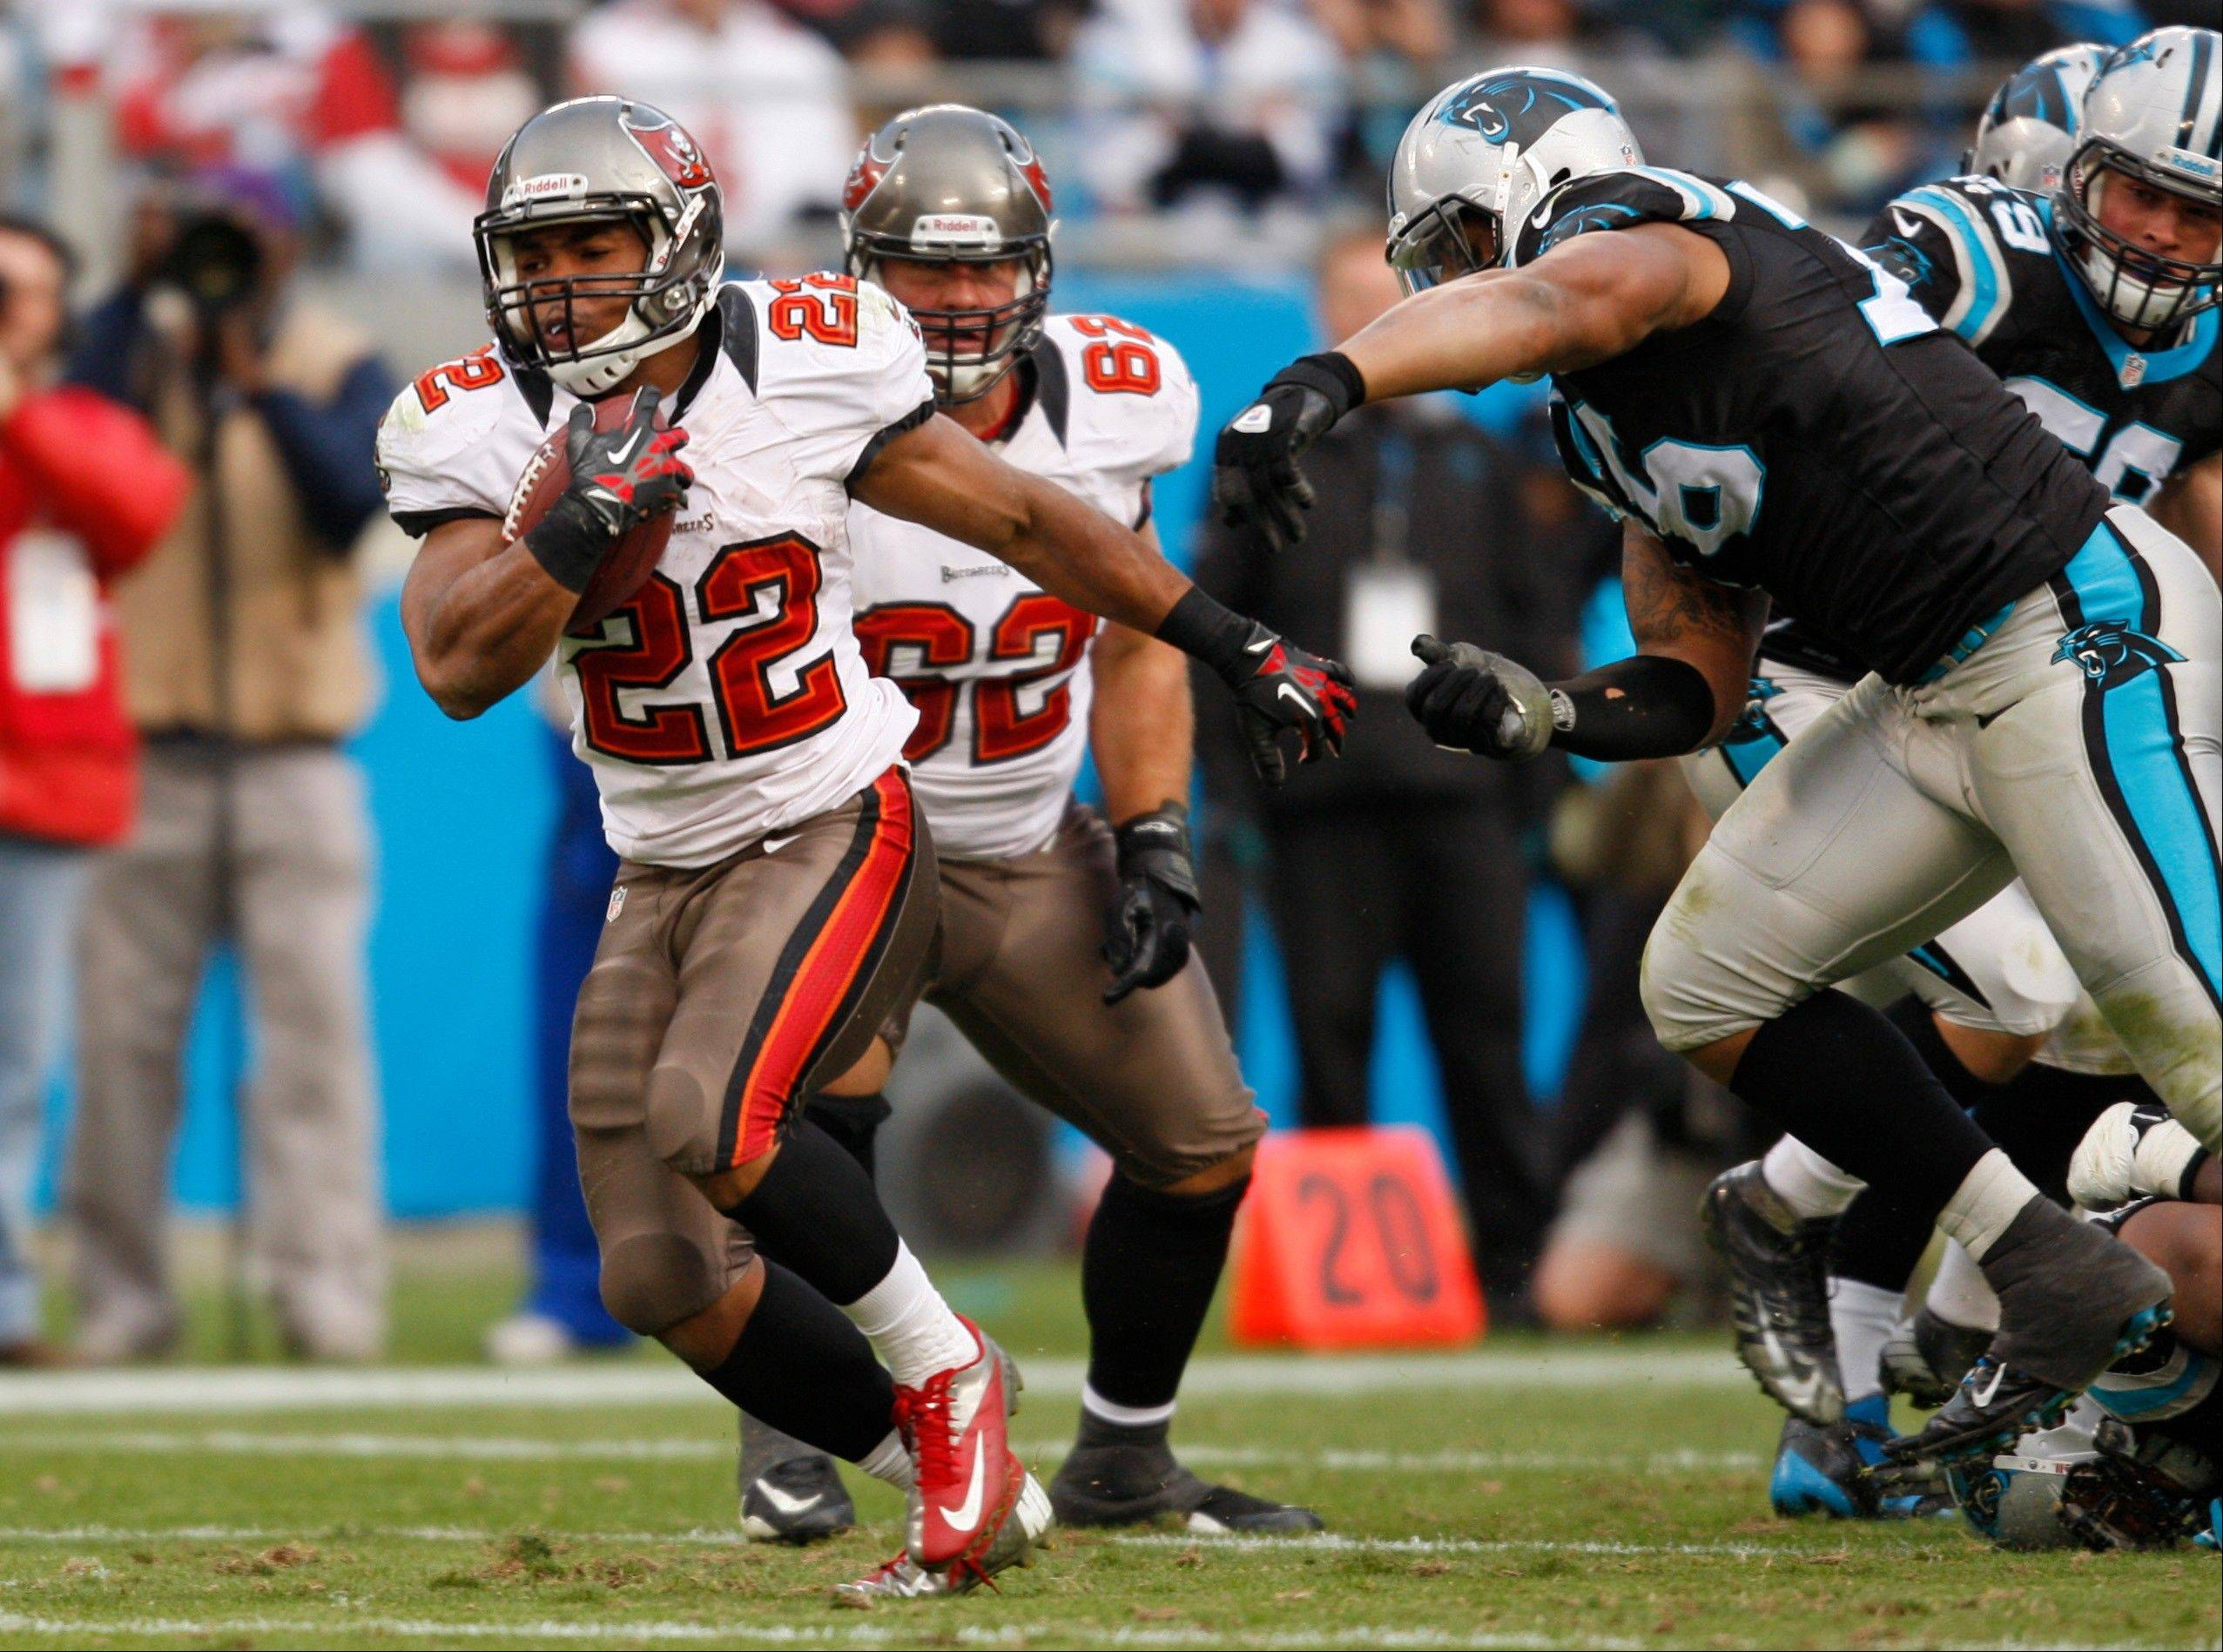 For fantasy football owners, rookie running back Doug Martin of Tampa Bay has been a huge surprise this season.